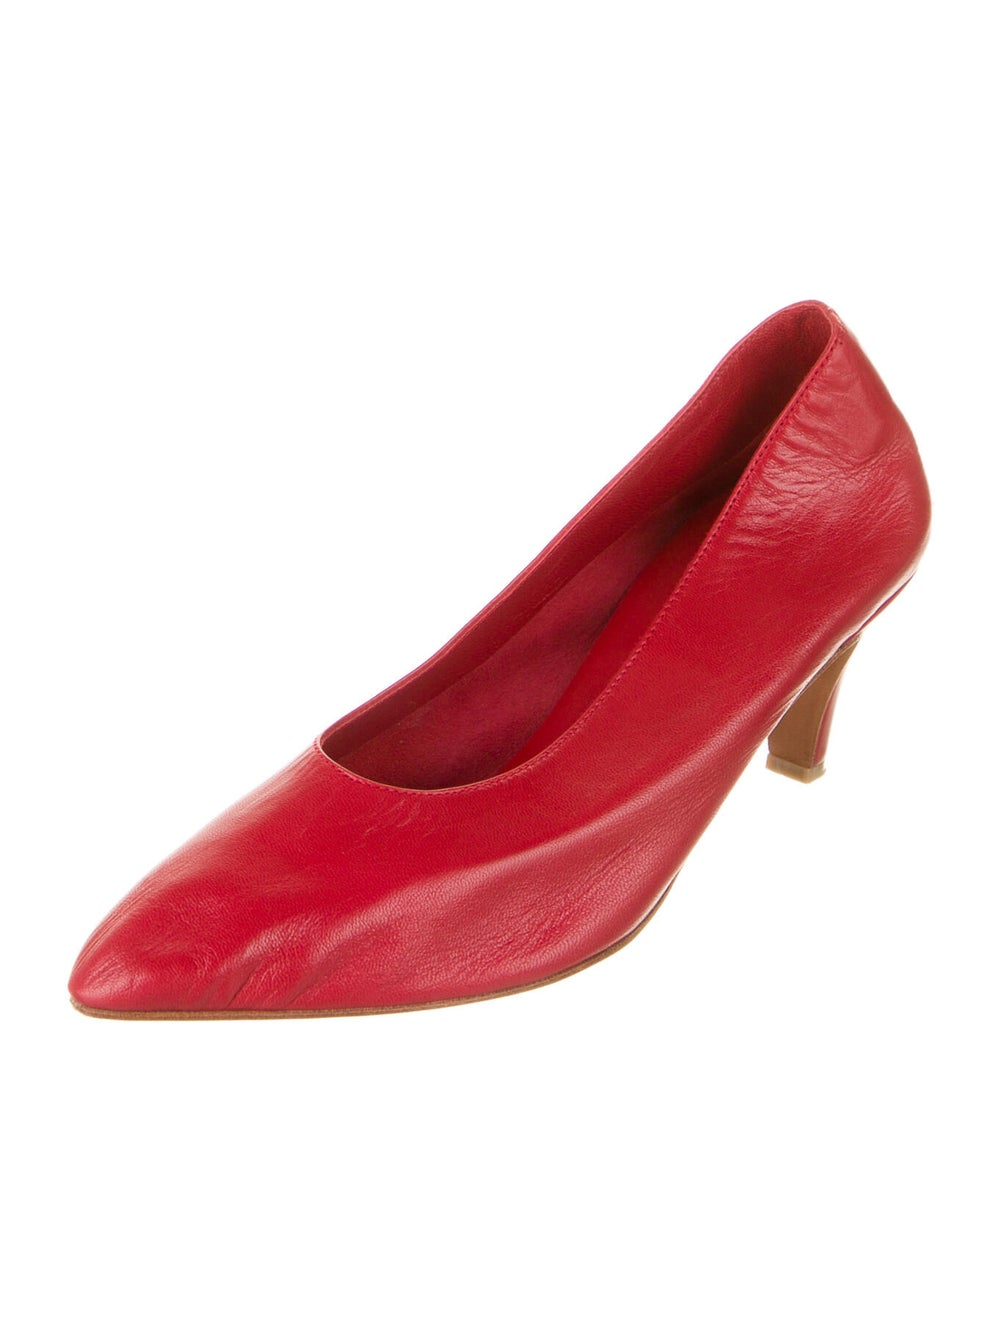 Martiniano Party Leather Pumps Red - image 2